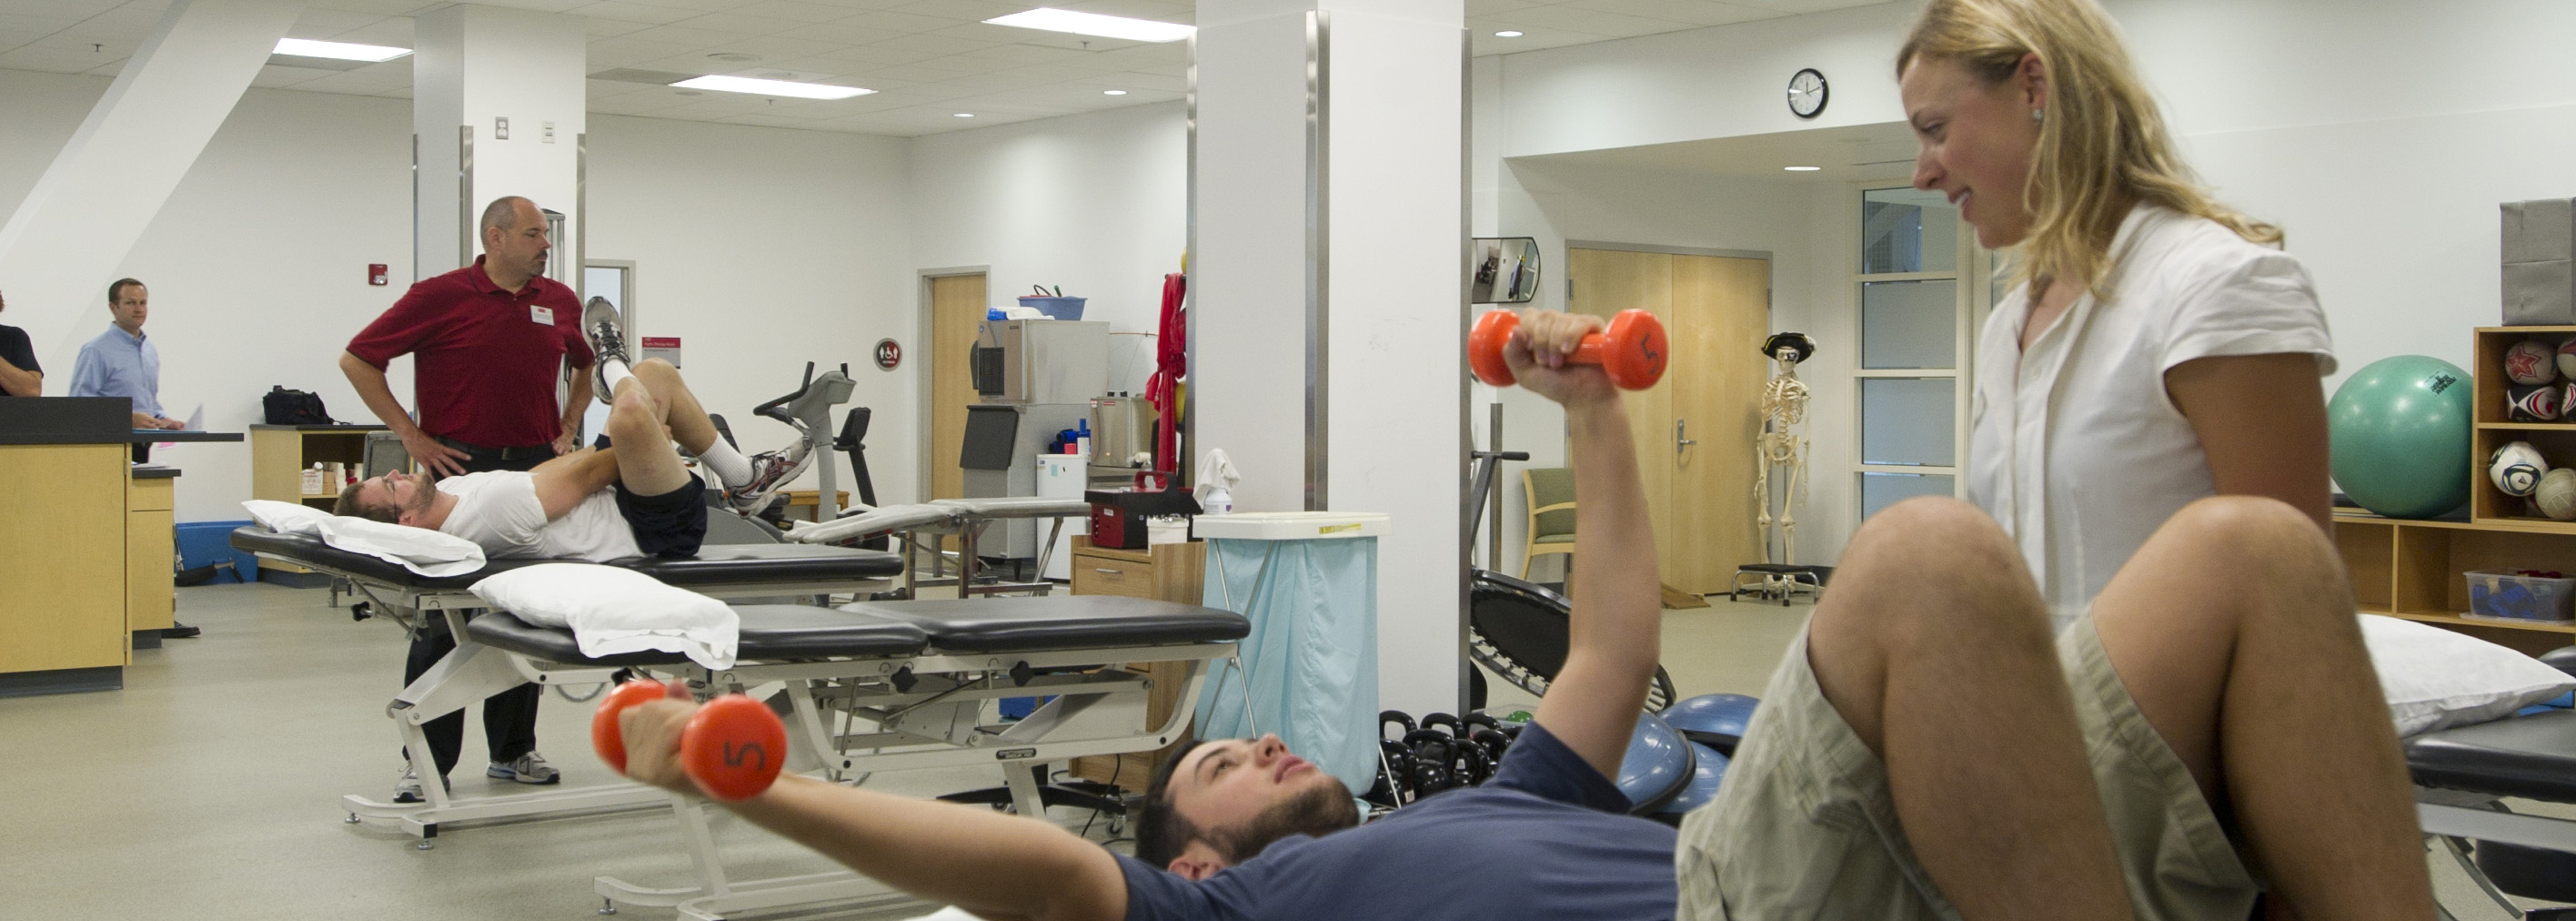 Boston physical therapy university - Physical Therapy Services